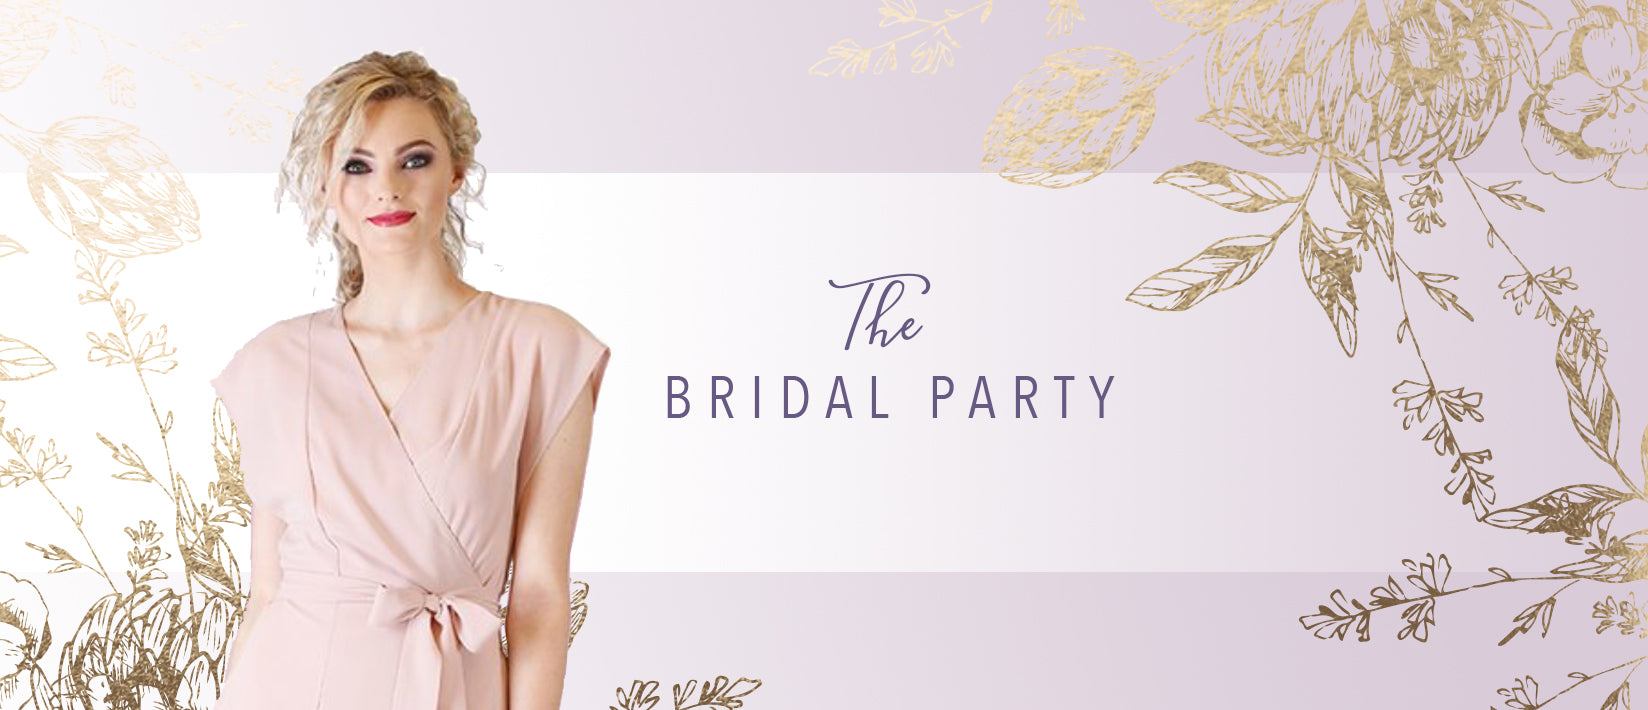 Bridal Party Dresses | Annah Stretton